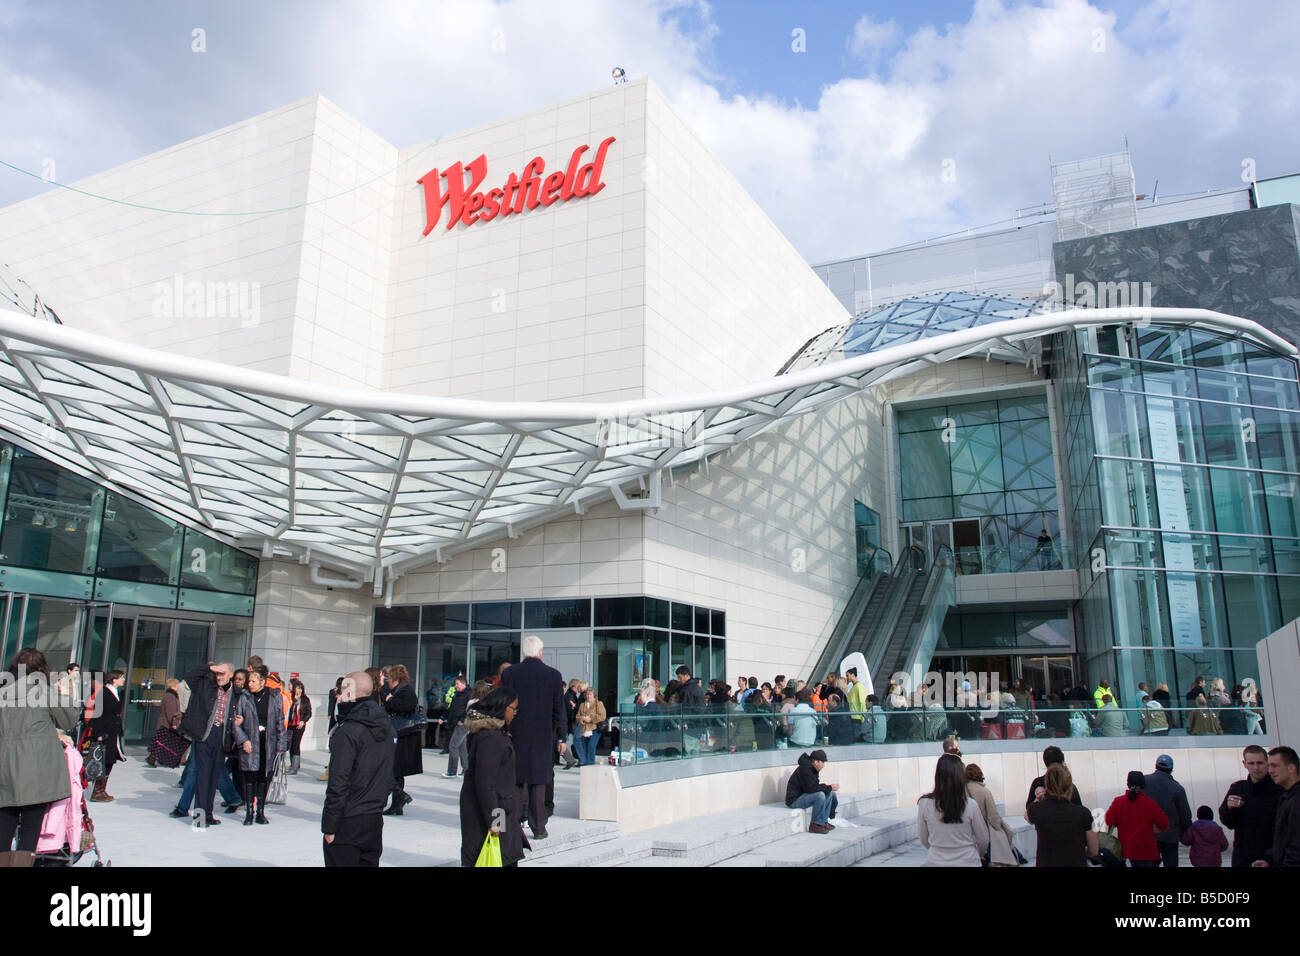 Exterior of Westfield Shopping complex at Shepherds Bush London - Stock Image